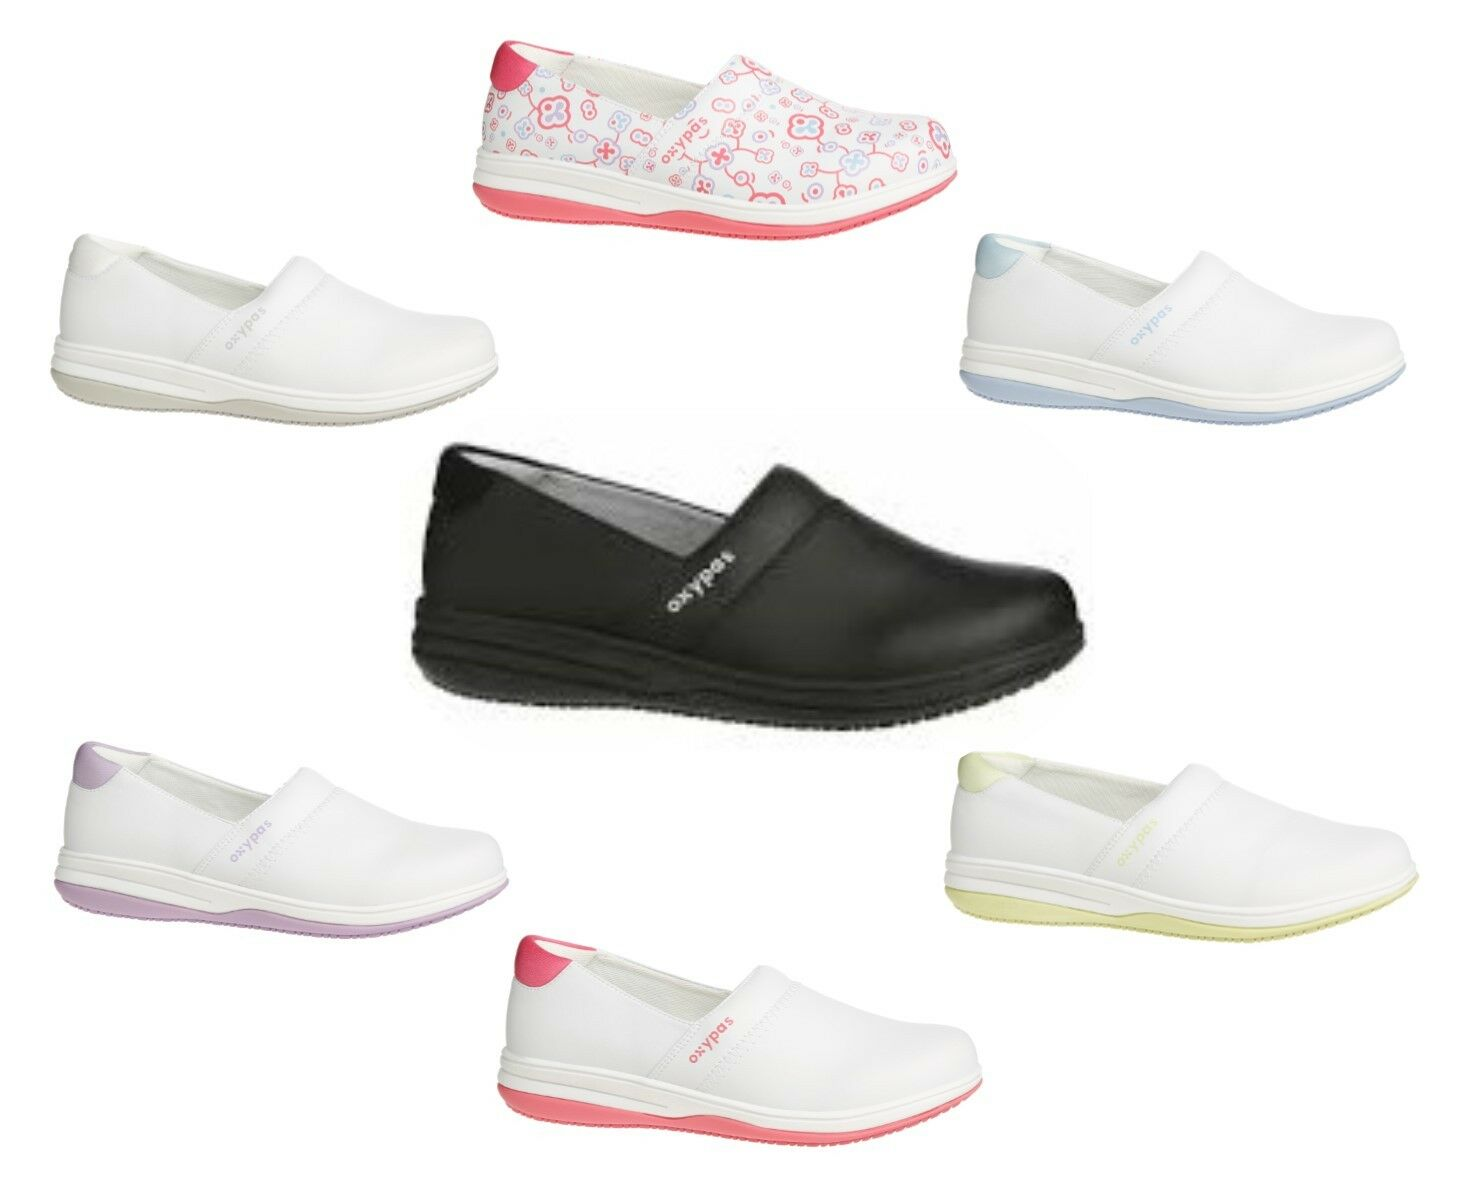 Oxypas Medilogic Suzy, Slip-on, Anti-slip, Washable Anti-static, Washable Anti-slip, Nursing Schuhe. 56dcc0